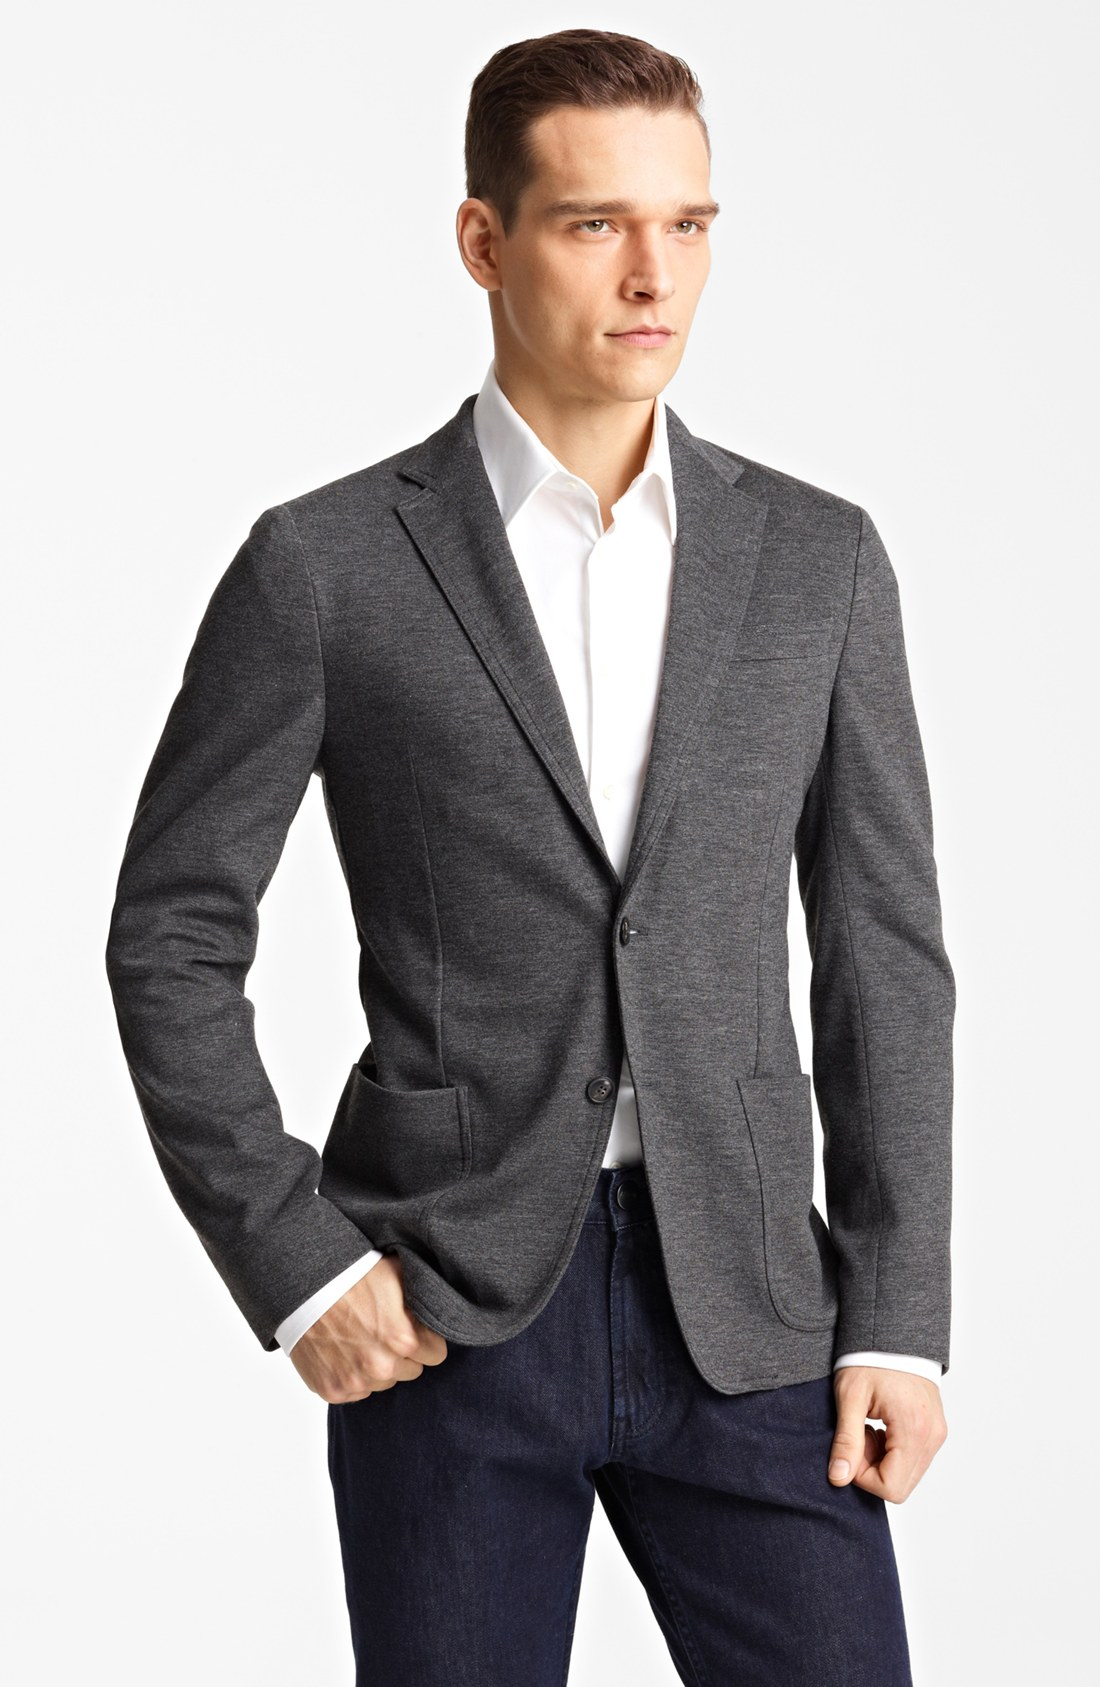 This listing is for a vintage Harris Tweed Men's black and Gray Wool 2 Btn Sport Coat Blazer Size 40 R USA Half lined single back vent chest 42in length 32in Shipping will be through usps priority mai J. CREW LUDLOW TOLLEGNO GRAY HERRINGBONE WOOL 2 BTN MENS SPORT COAT 40R.